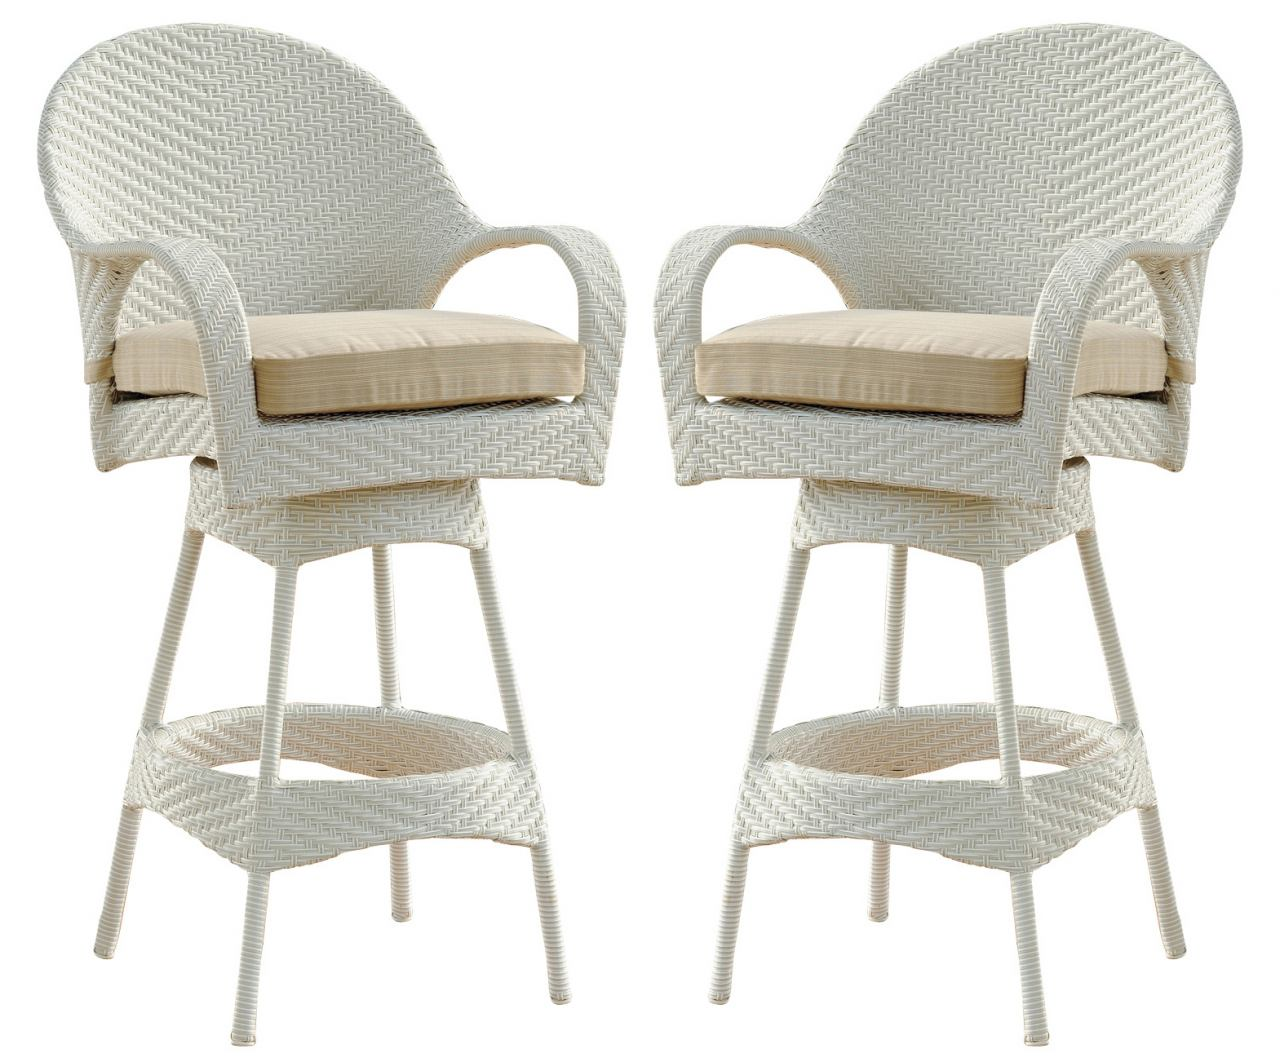 "South Sea Rattan Bahia Outdoor Bistro 30"" Bar Stool in Rustic White (Set of 2) 78309-30"